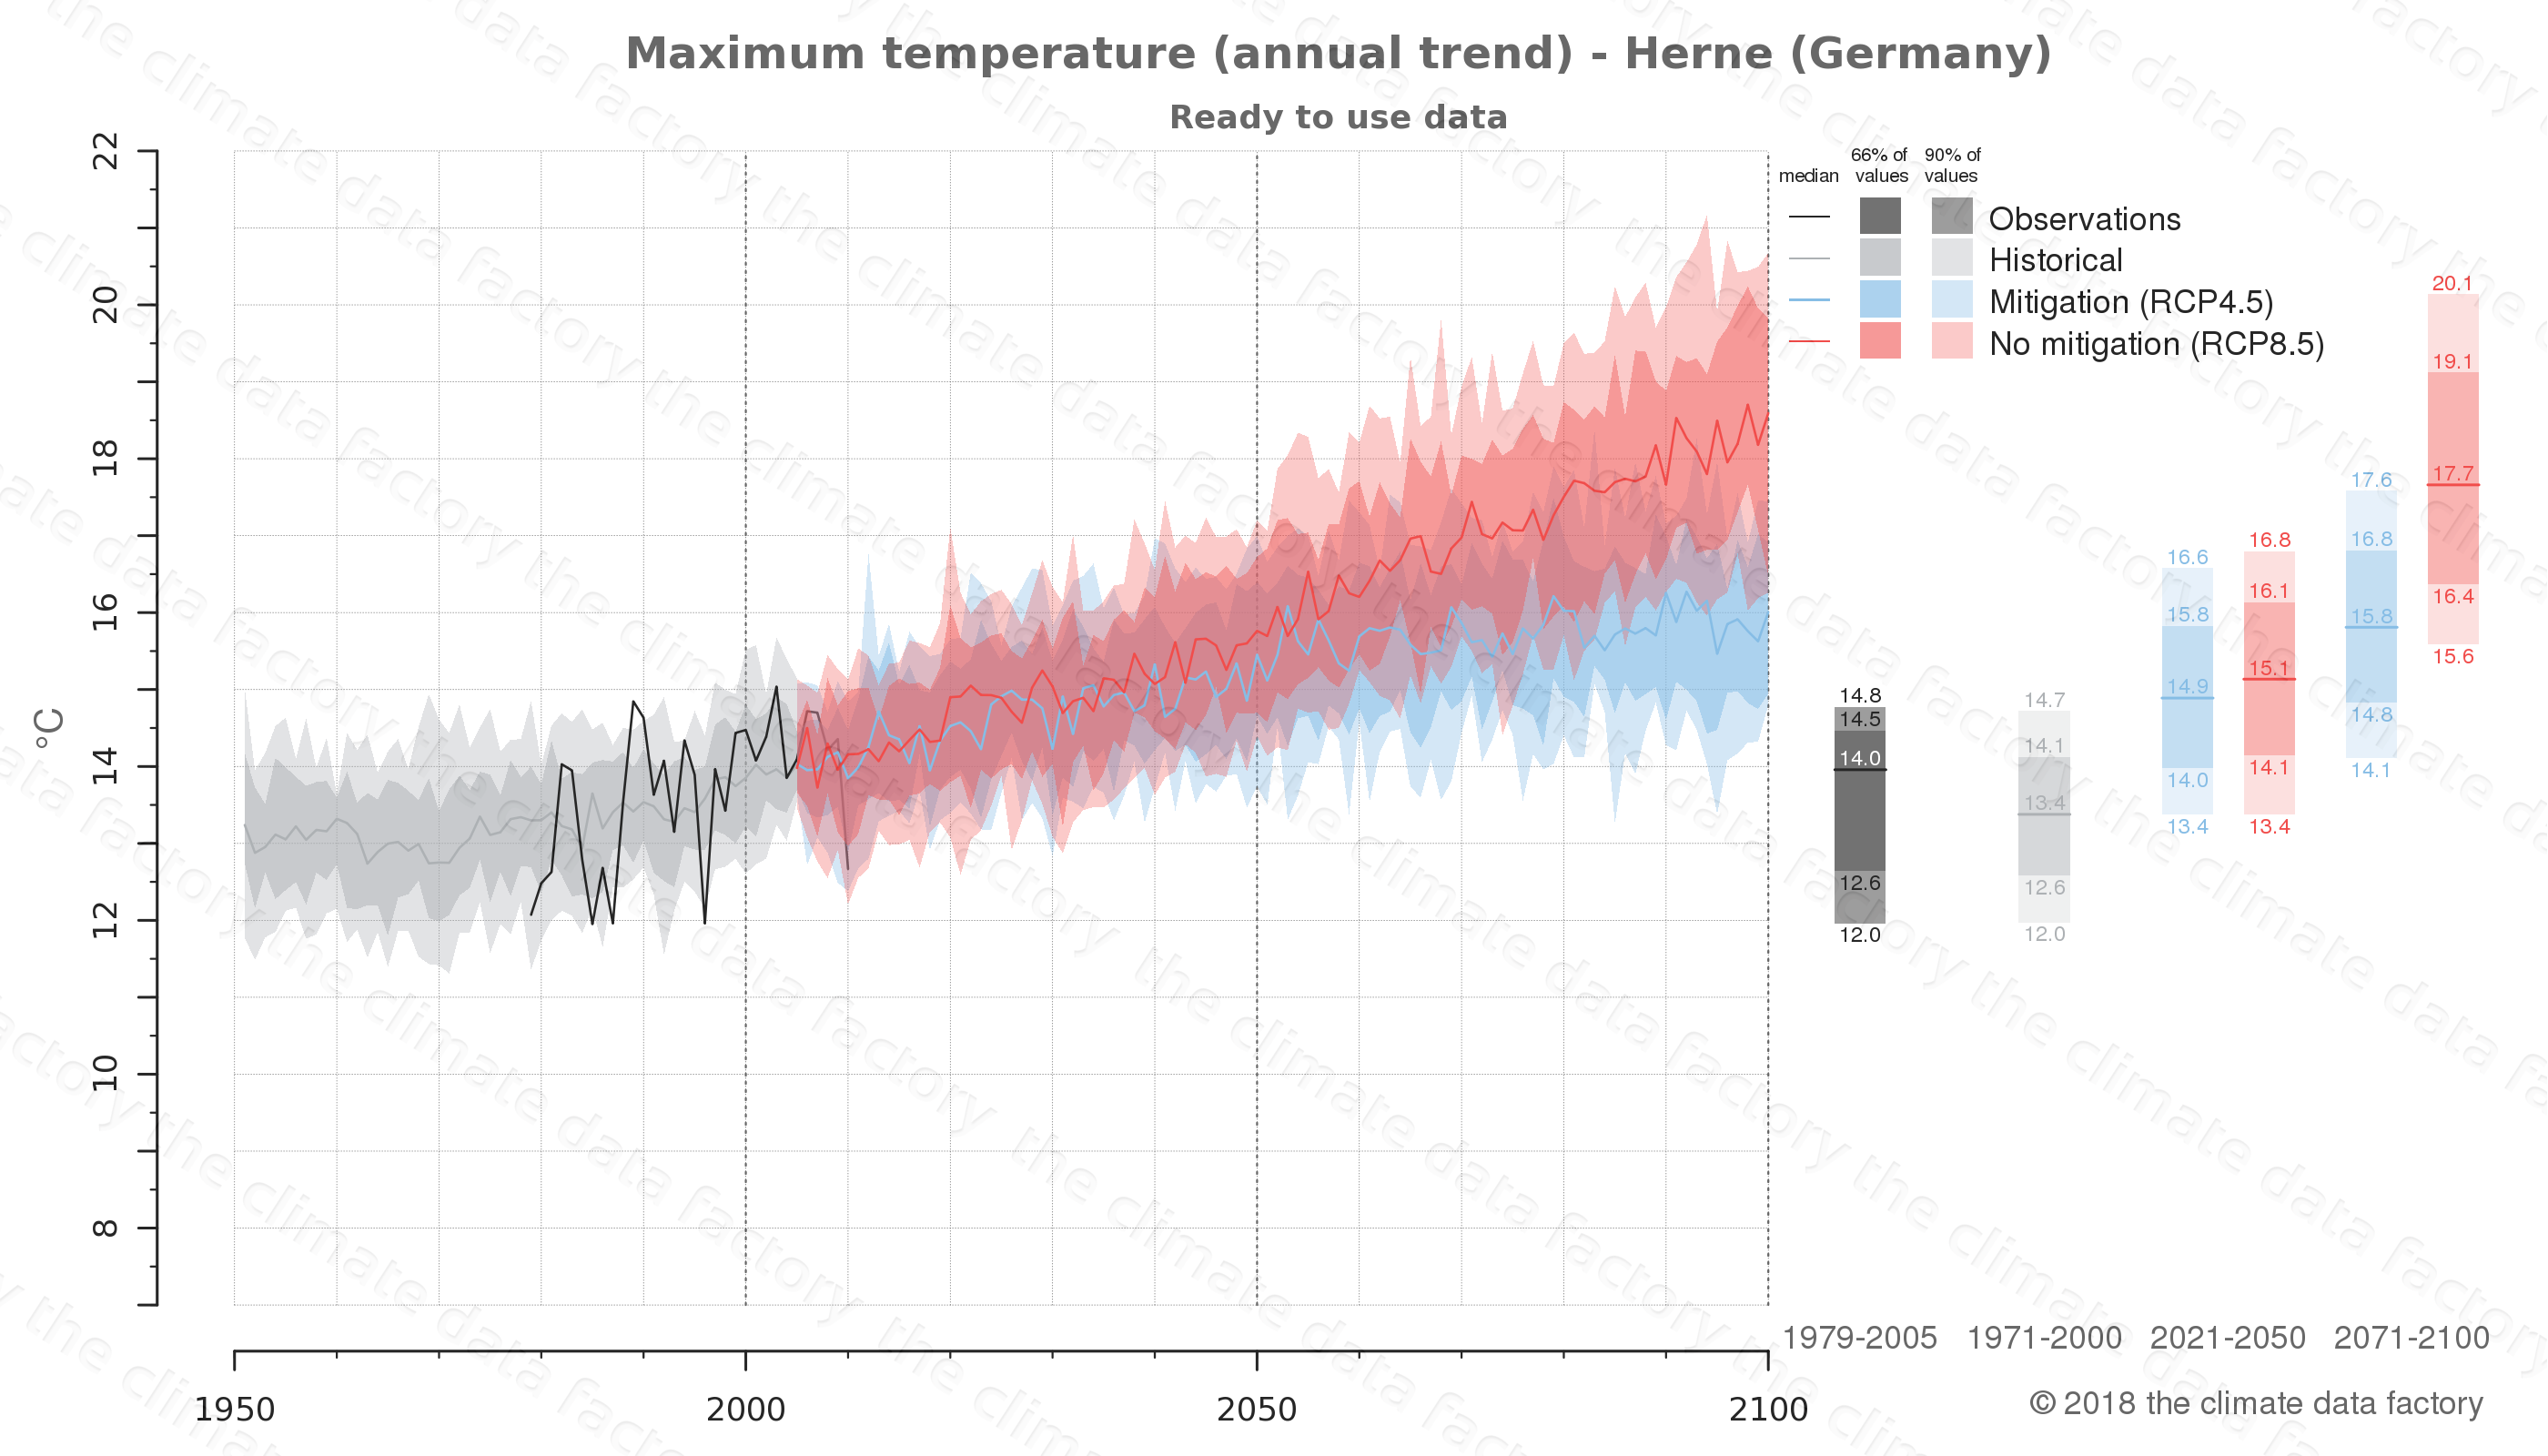 climate change data policy adaptation climate graph city data maximum-temperature herne germany